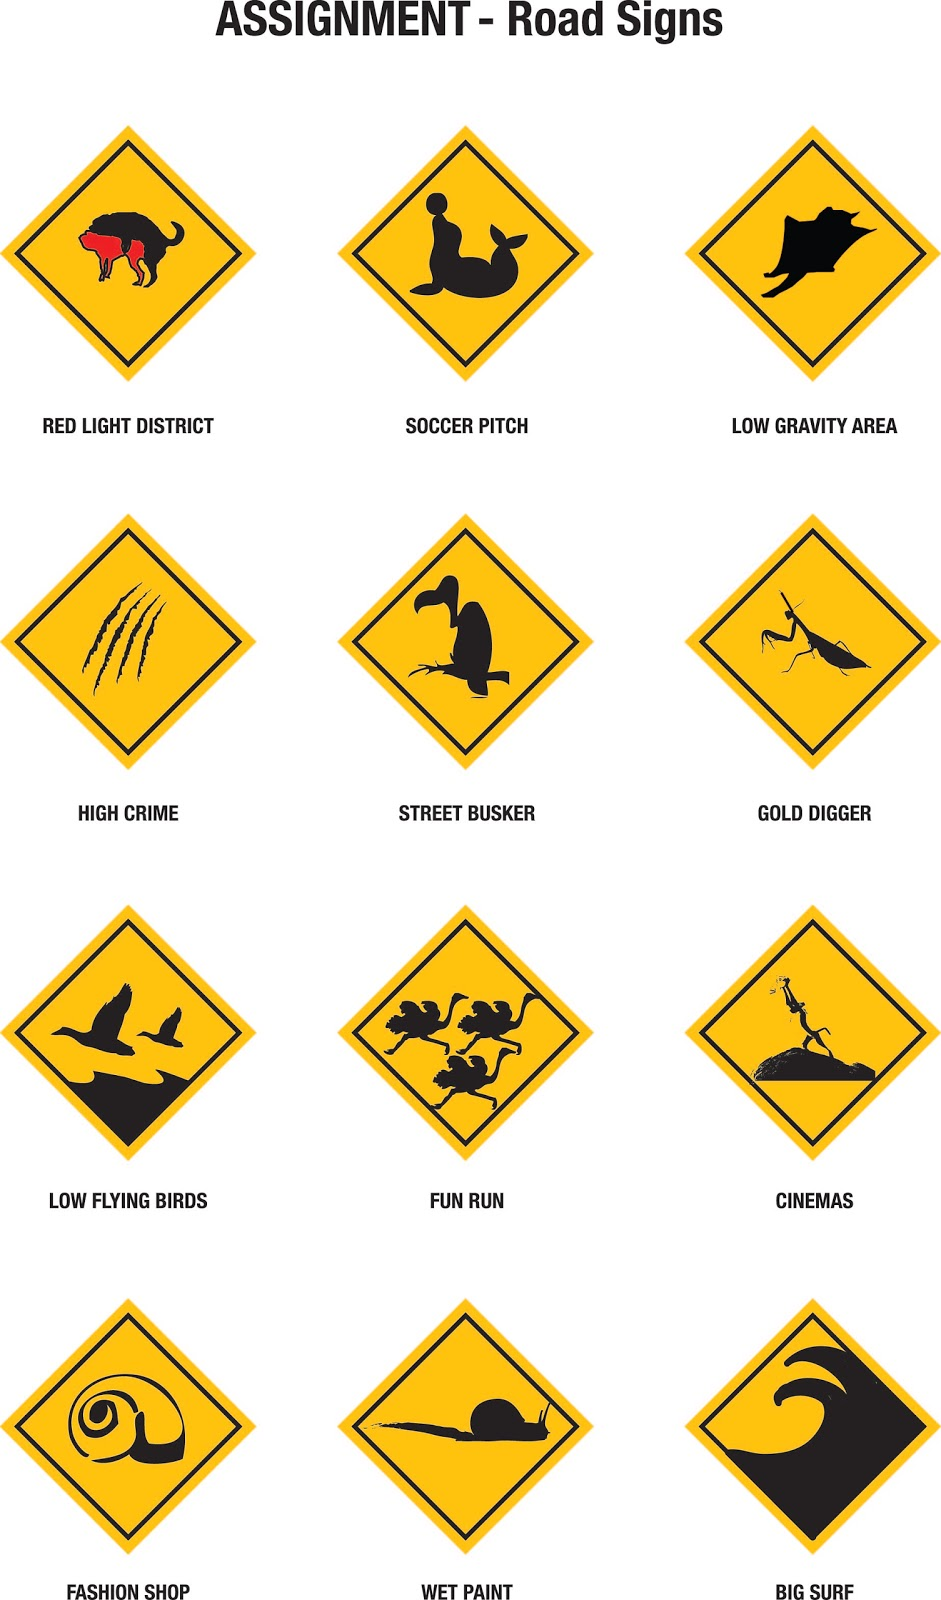 signs road animals symbols distribution